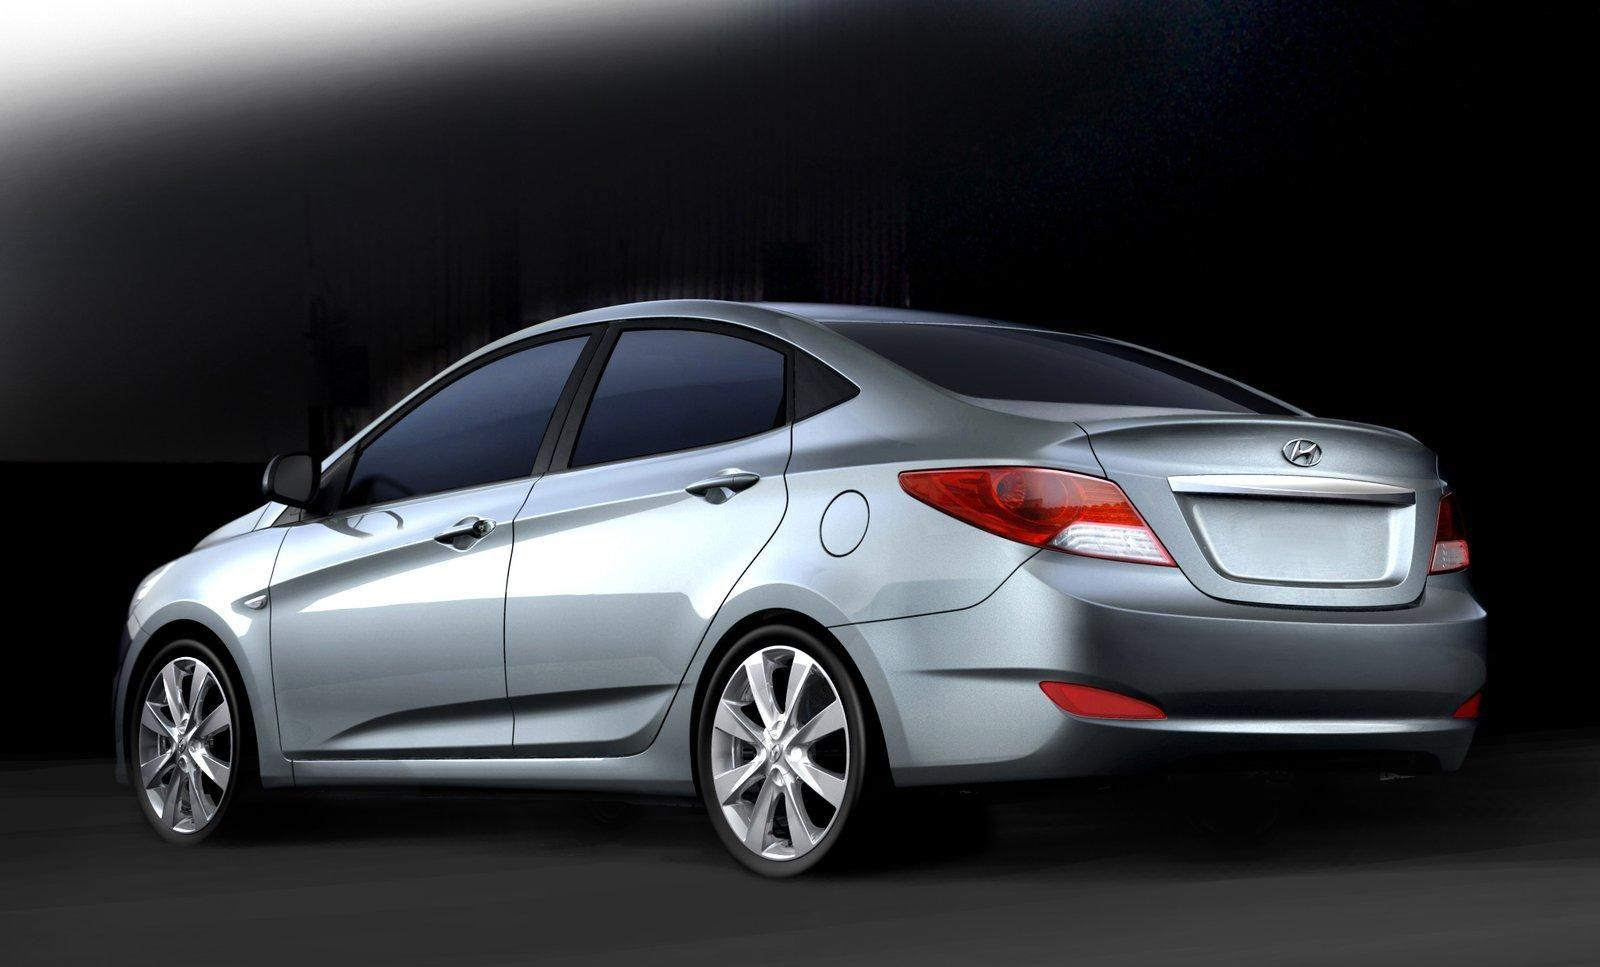 Hyundai Verna / Accent 2010 photo 58906 pictures at high resolution